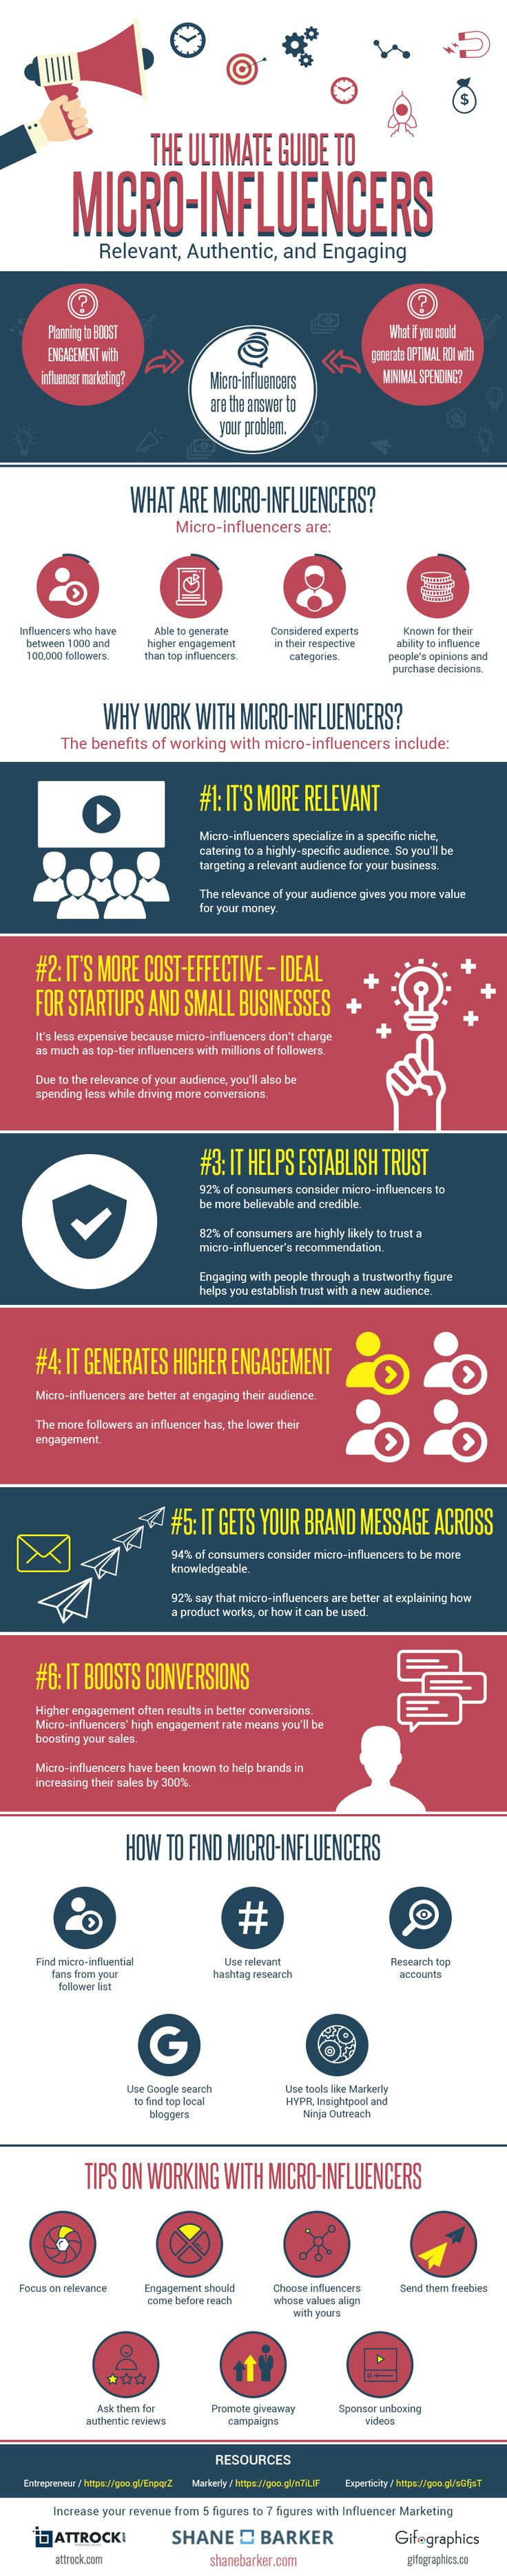 The Ultimate Guide To Micro-Influencers #Infographic #Marketing